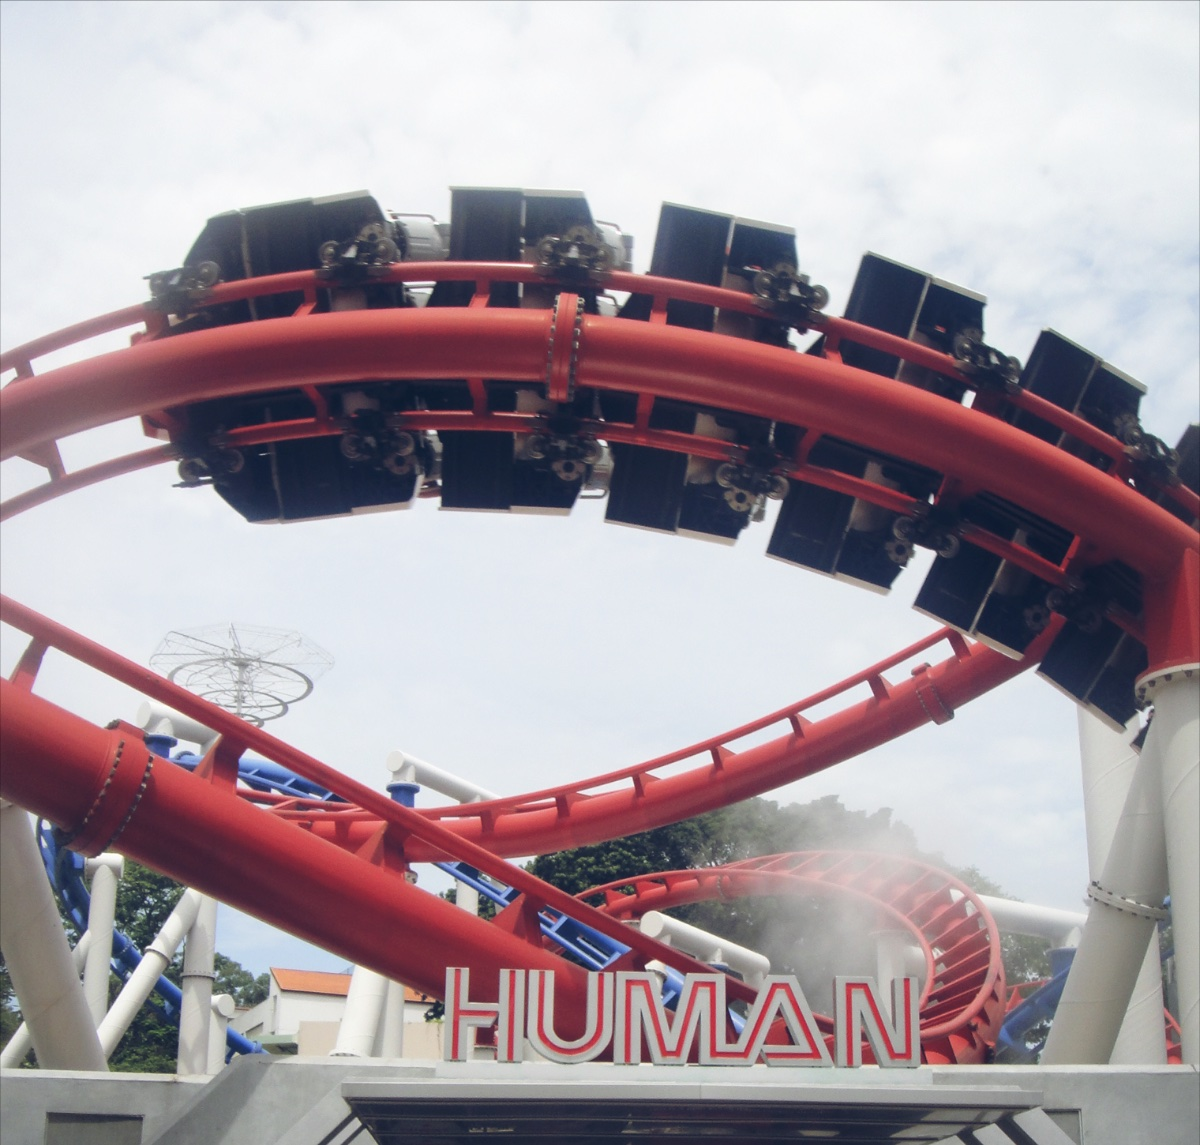 #RollerCoaster, #Human, #Singapore